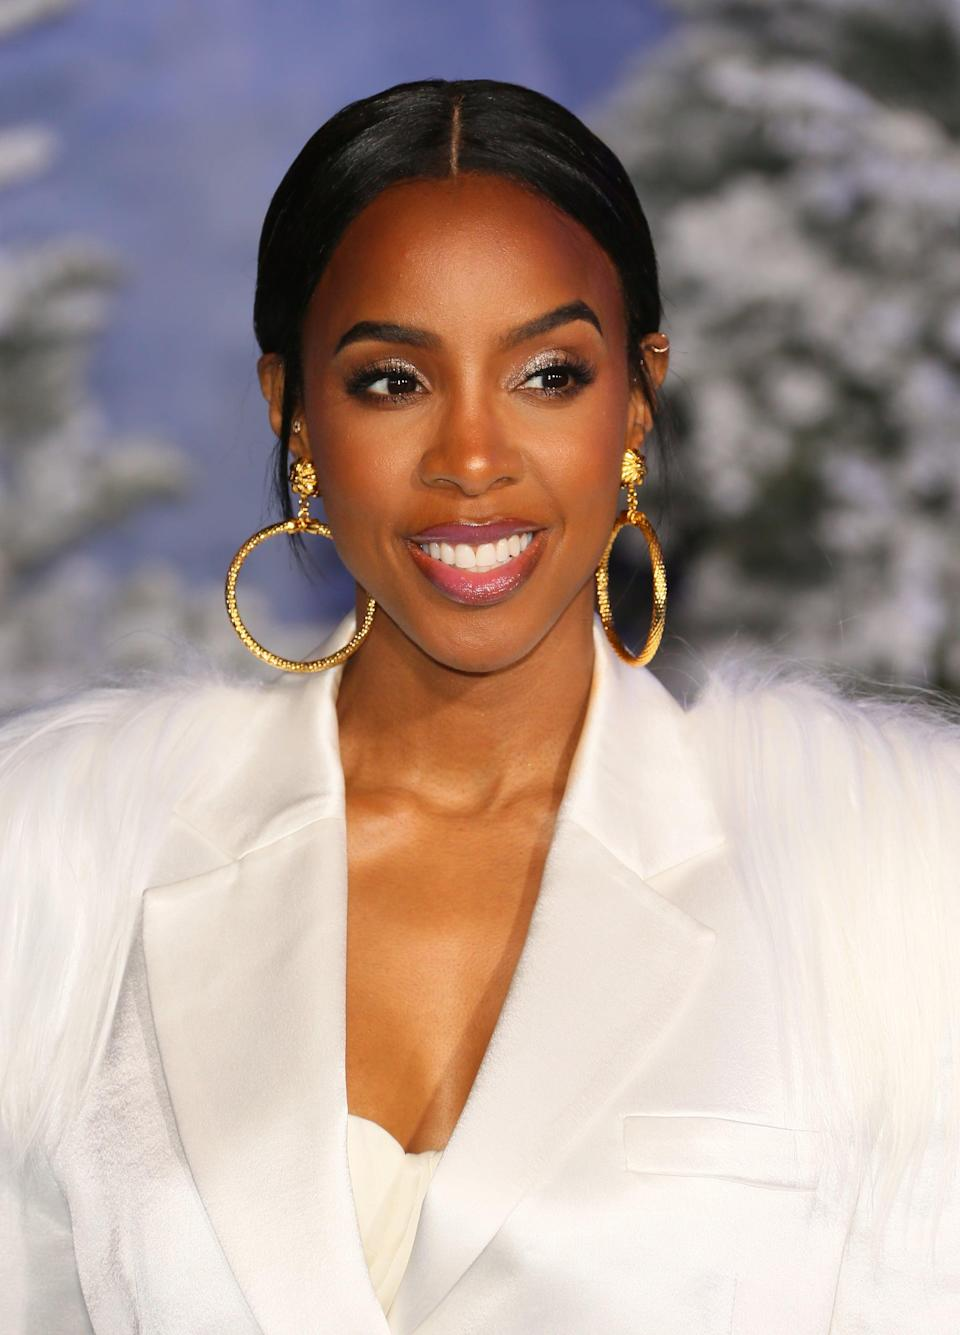 "<p><a class=""link rapid-noclick-resp"" href=""https://www.popsugar.com/latest/Kelly-Rowland"" rel=""nofollow noopener"" target=""_blank"" data-ylk=""slk:Kelly Rowland"">Kelly Rowland</a> once told <strong>Shape</strong> that she <a href=""https://www.dailymail.co.uk/tvshowbiz/article-2434389/Kelly-Rowland-waited-10-years-boob-job-advice-Beyonces-mother-Tina-Knowles.html"" class=""link rapid-noclick-resp"" rel=""nofollow noopener"" target=""_blank"" data-ylk=""slk:waited ten years"">waited ten years</a> to get breast implants after consulting with her mother and Tina Knowles-Lawson. ""I wanted to get breast implants when I was 18, but my mom and Beyoncé's mom told me to really think about it first,"" she said. Rowland took their advice and got the surgery at 28 years old.</p>"